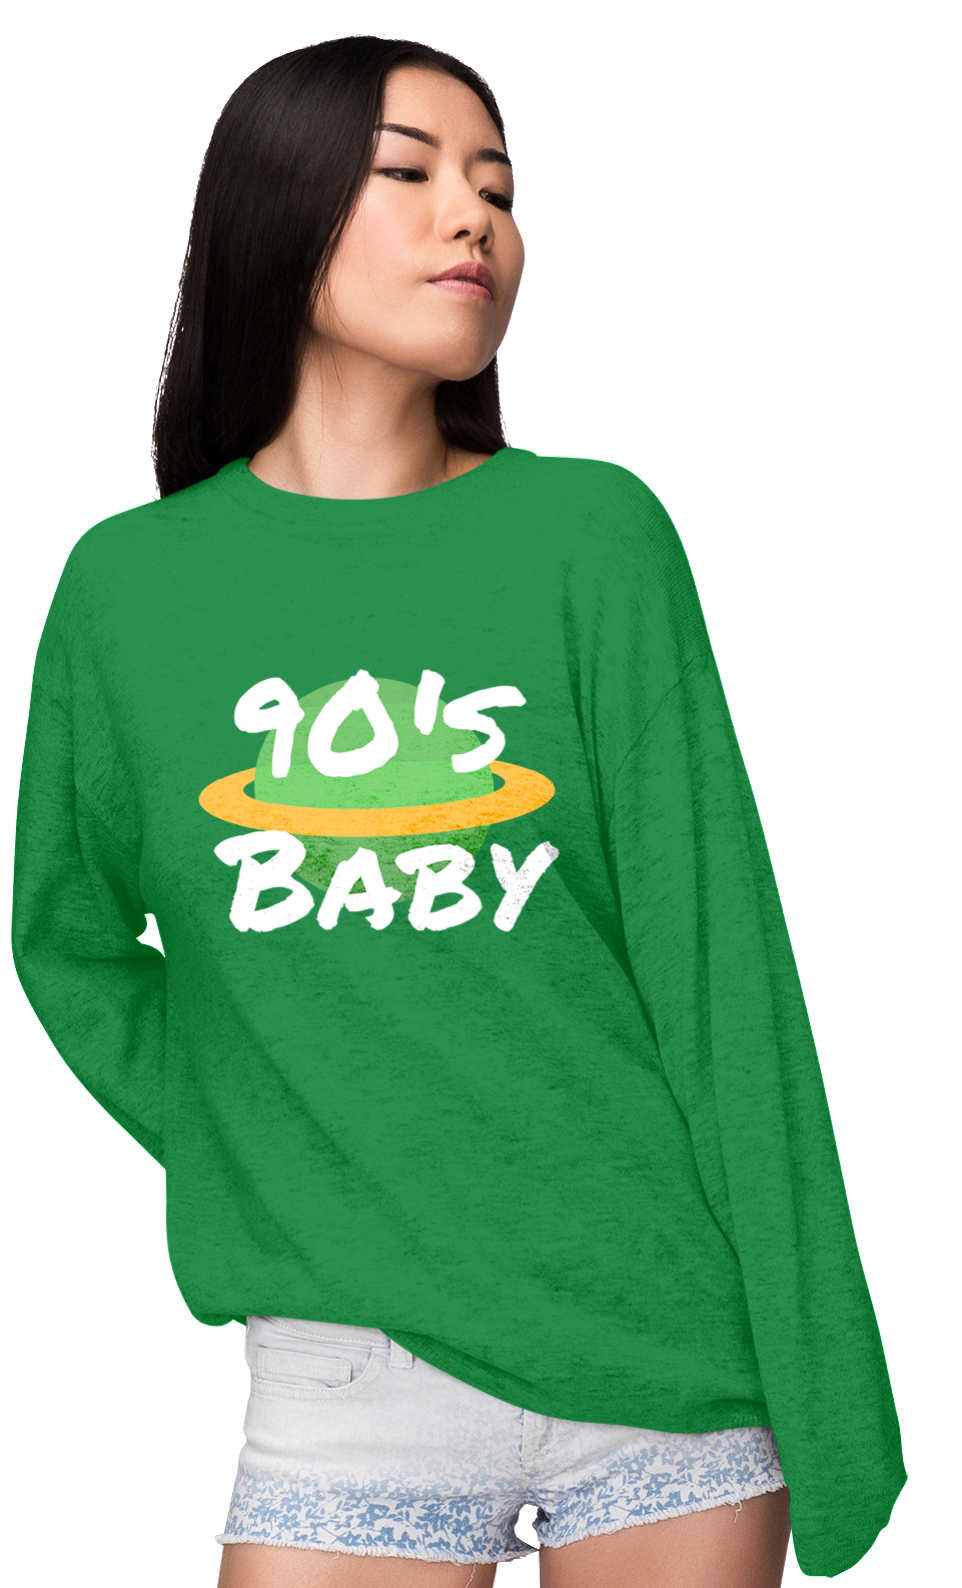 90's Baby World Sweatshirt (W)